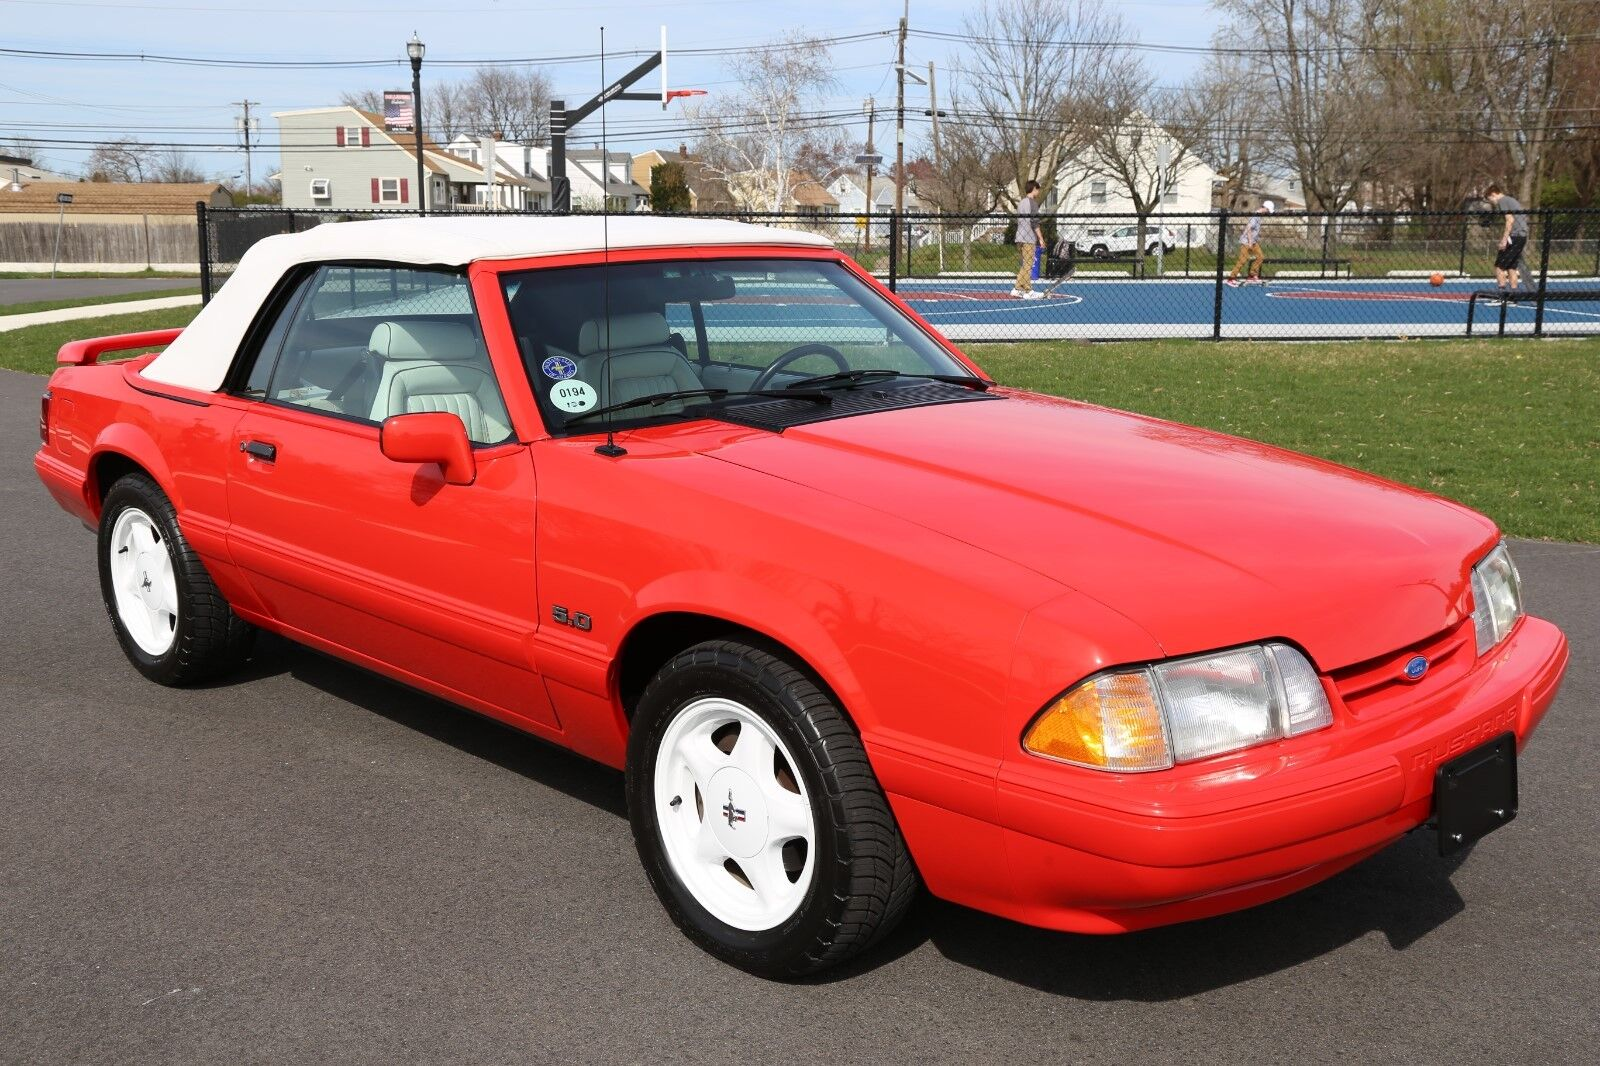 1992 FORD MUSTANG LX SUMMER EDITION CONVERTIBLE 16K ACTUAL MILES MINT NO RESERVE